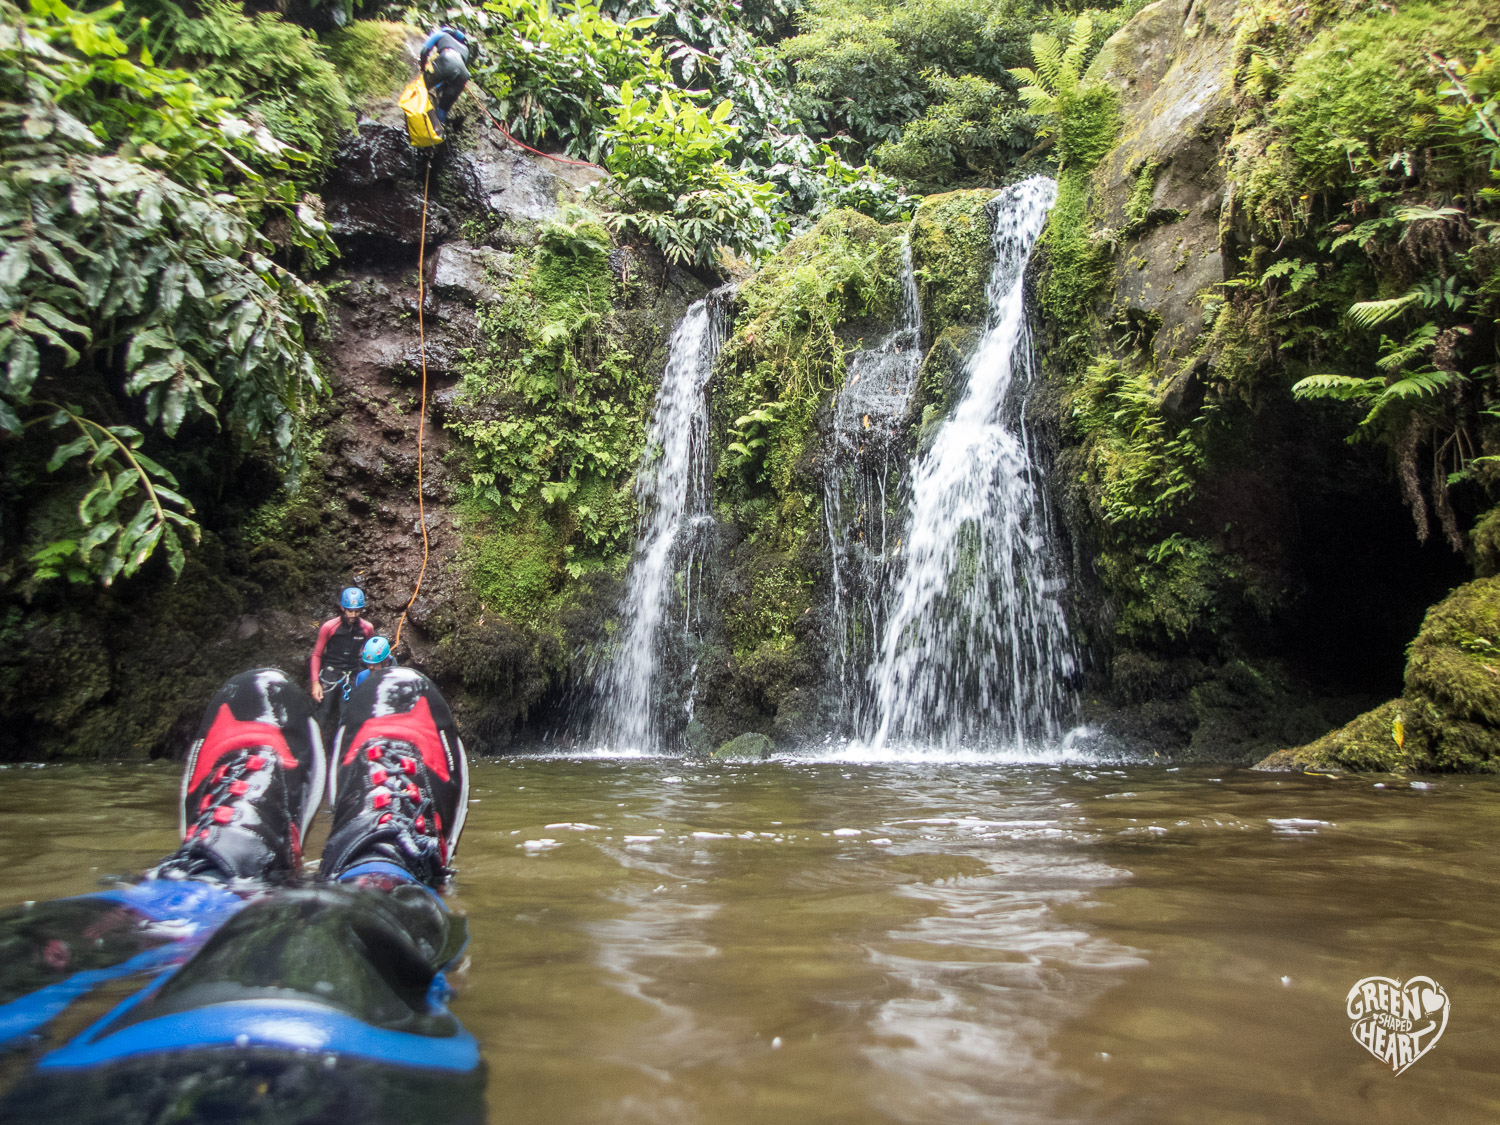 Floating while canyoning on Sao Miguel © Cora Backes | Green Shaped Heart